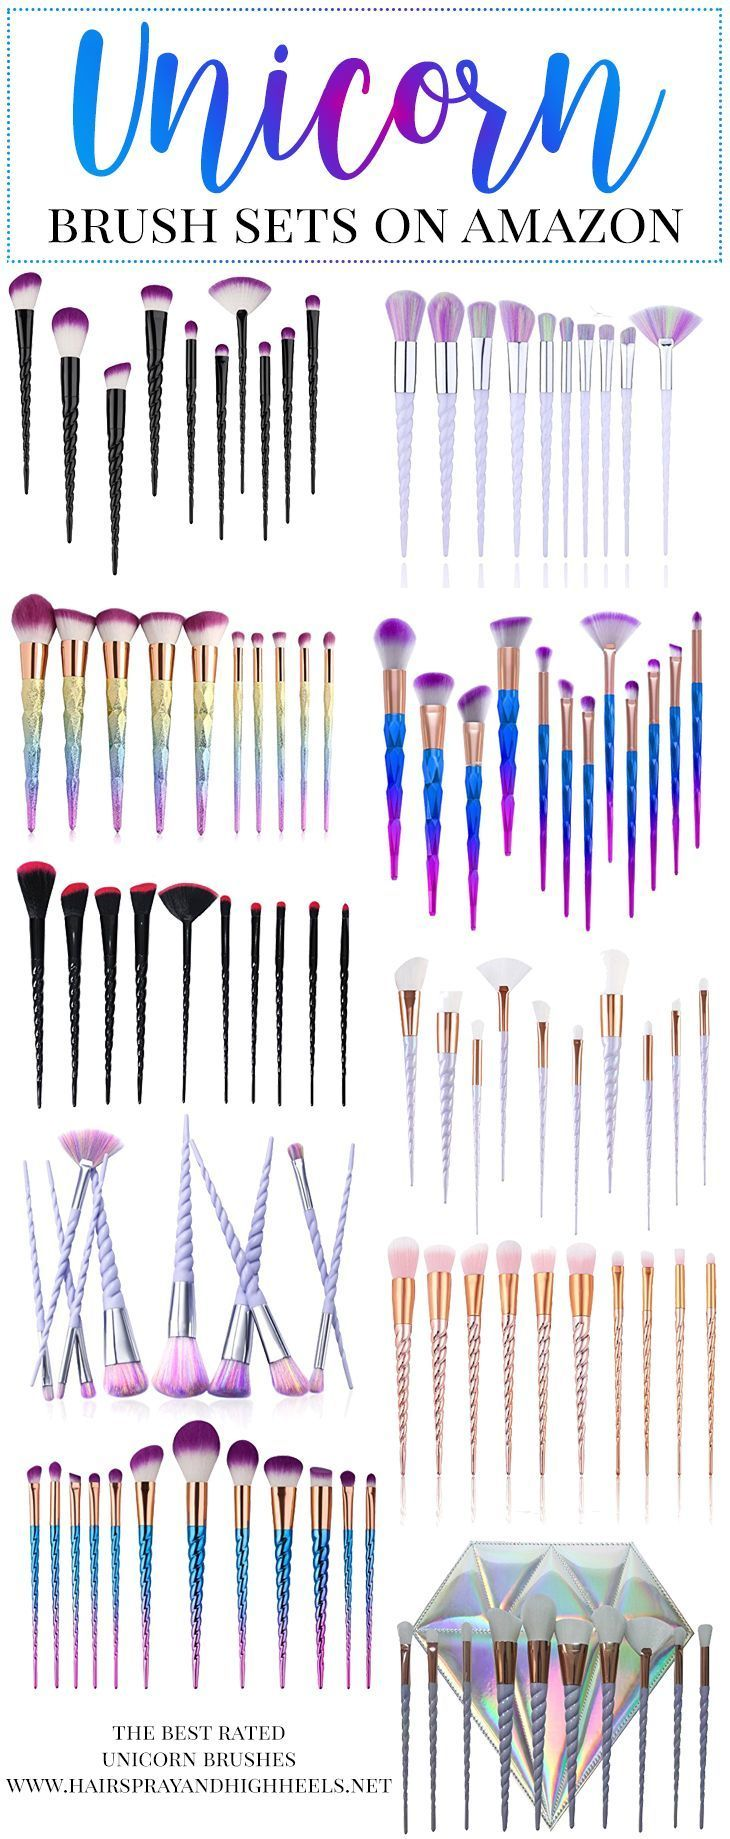 Hey YOU! Yes, YOU. LOOK at these fabulous UNICORN Makeup Brushes. You NEED them in your life!